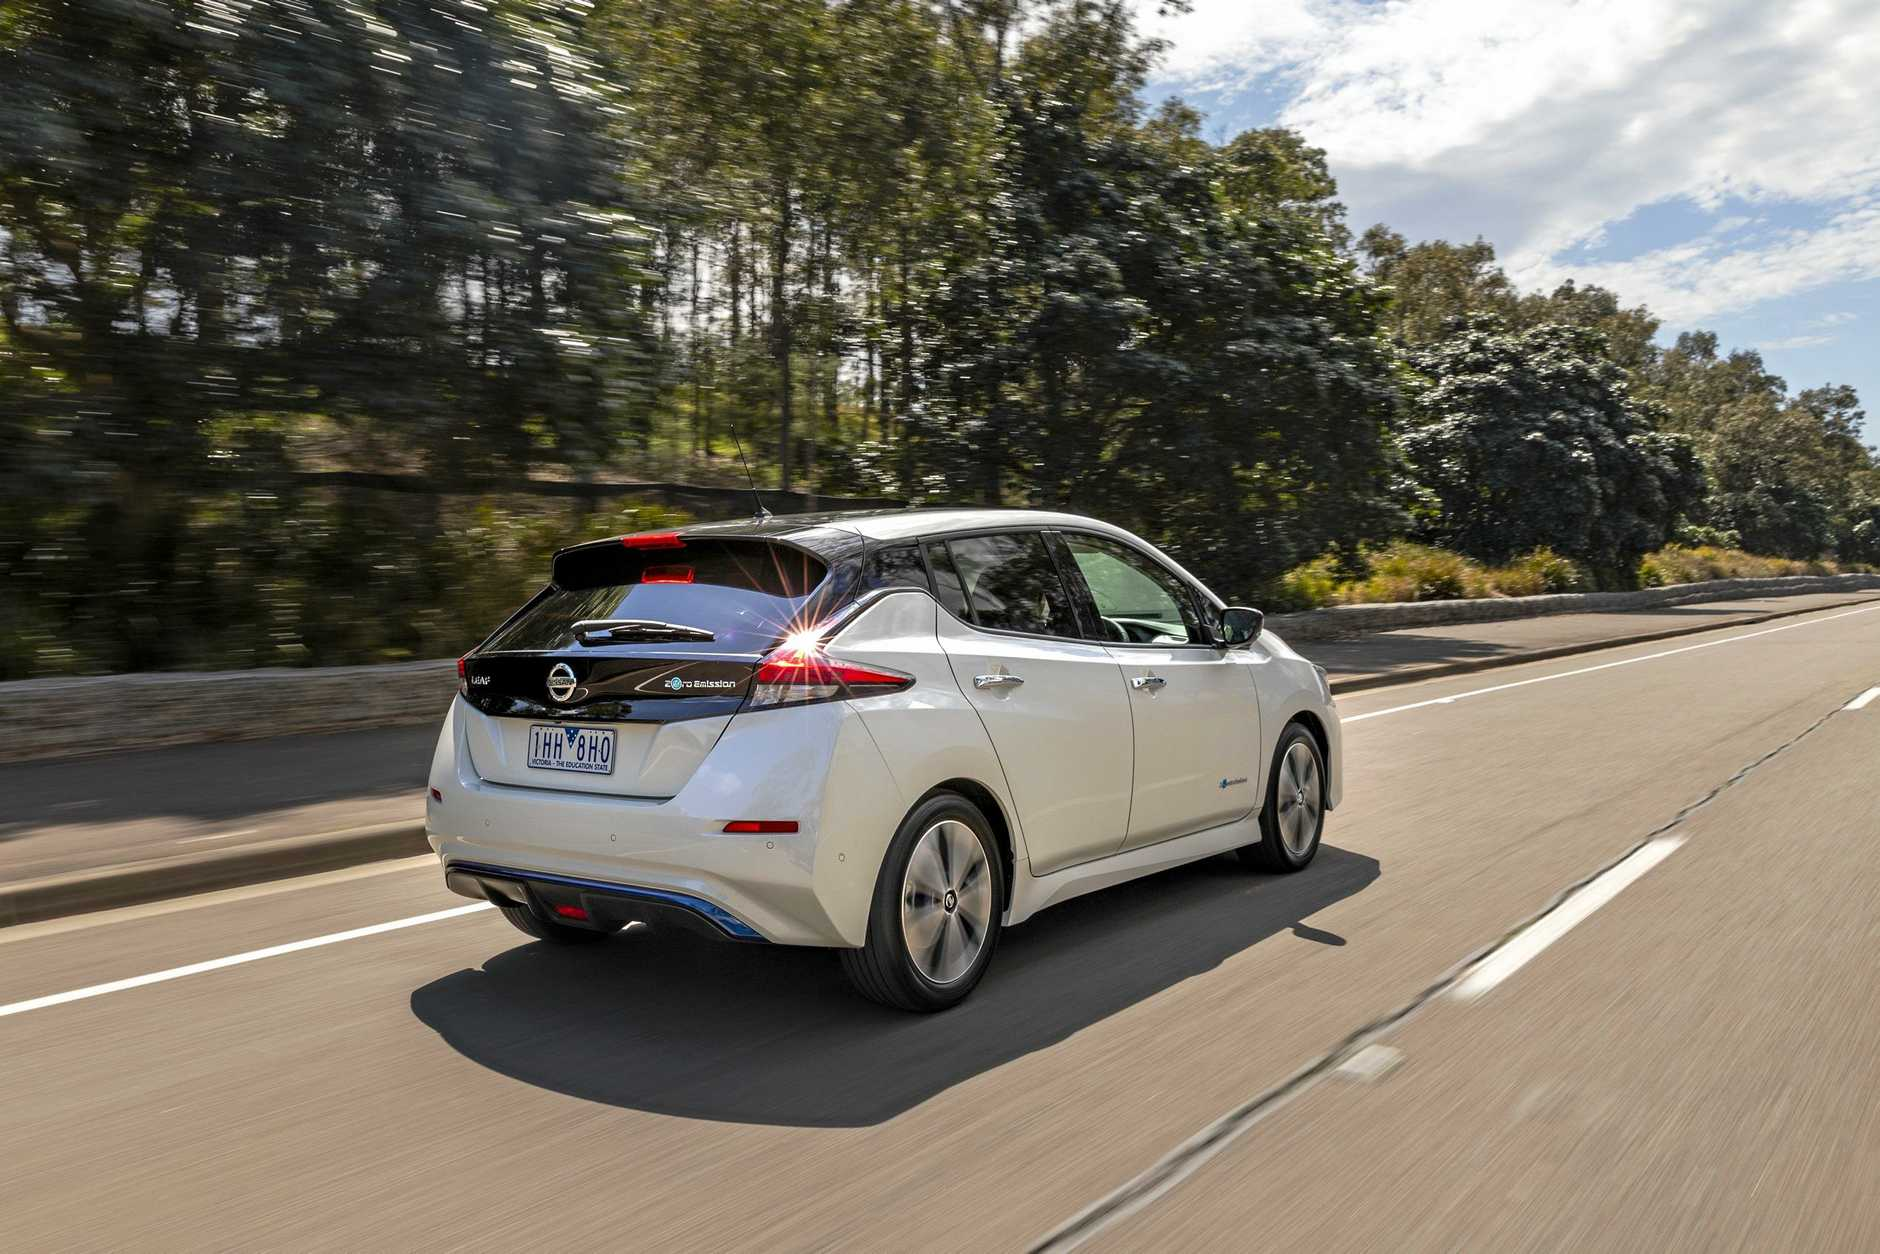 A REAL BUZZ: Residents will see more Nissan Leaf electric cars driving around Warwick soon.